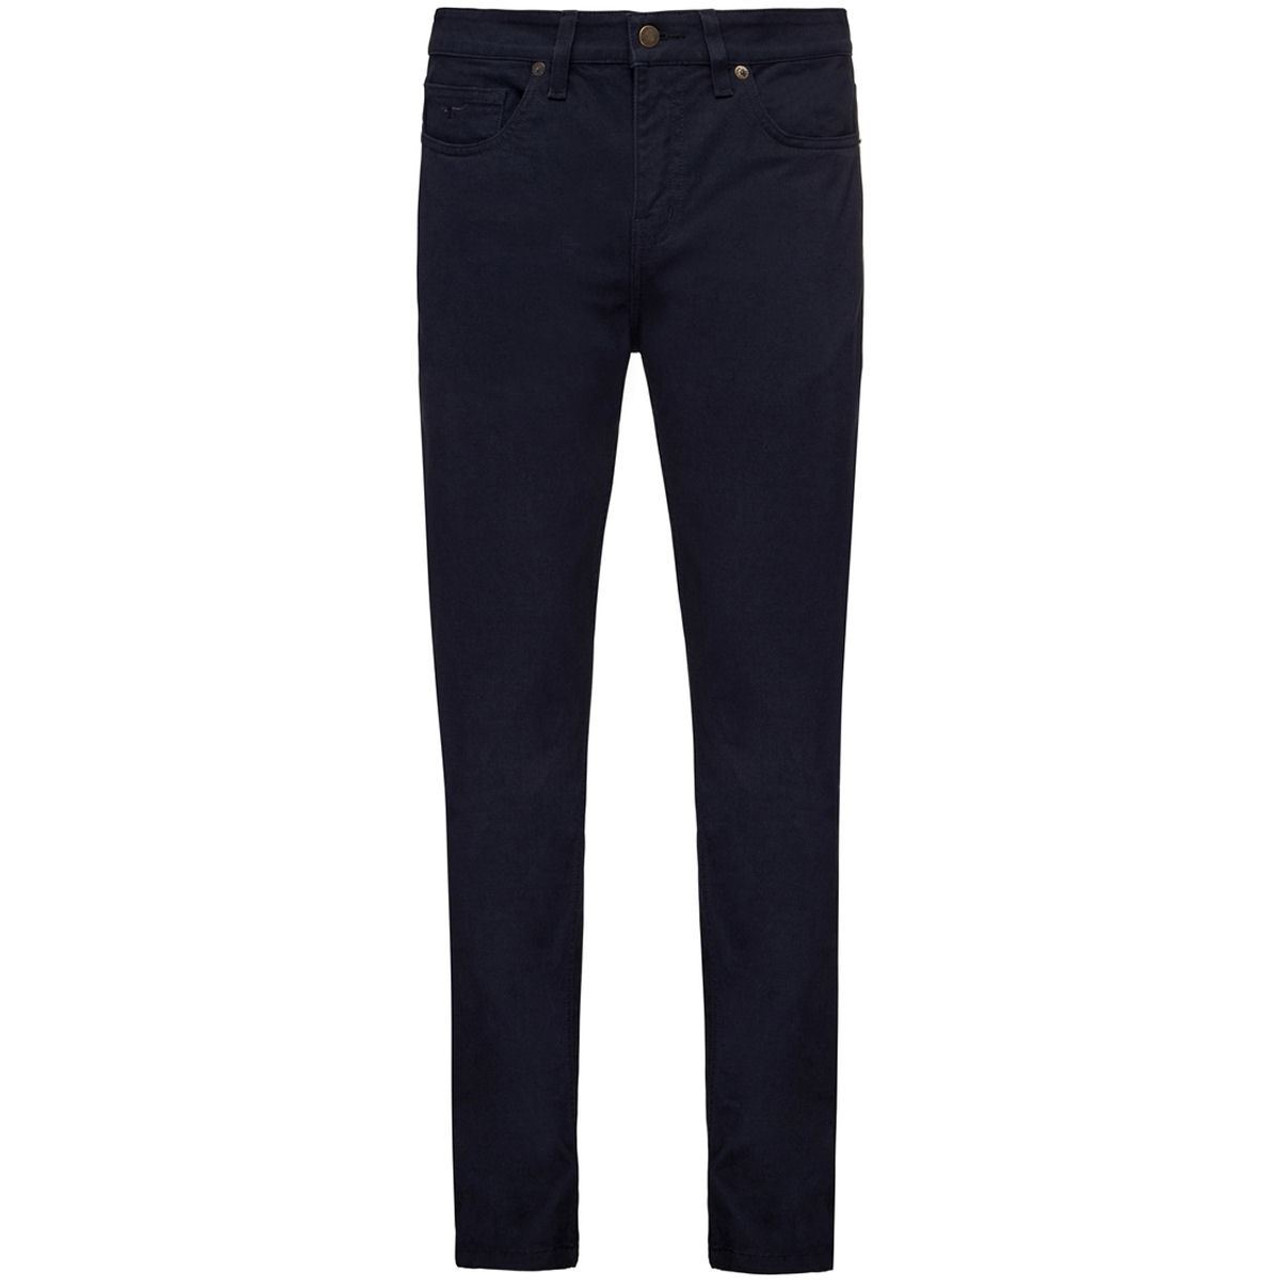 R.M. Williams Ramco Drill Jeans